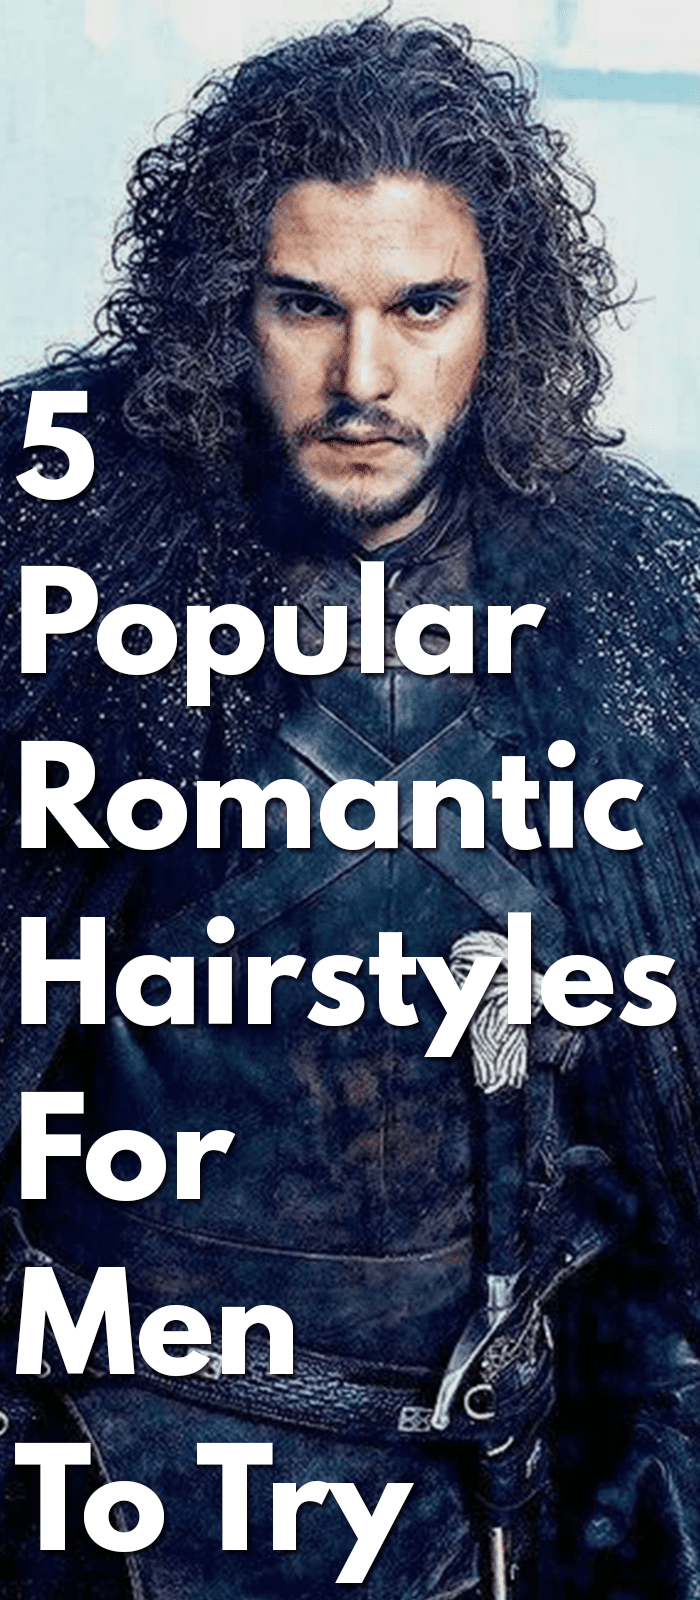 5-Popular-Romantic-Hairstyles-For-Men-To-Try.